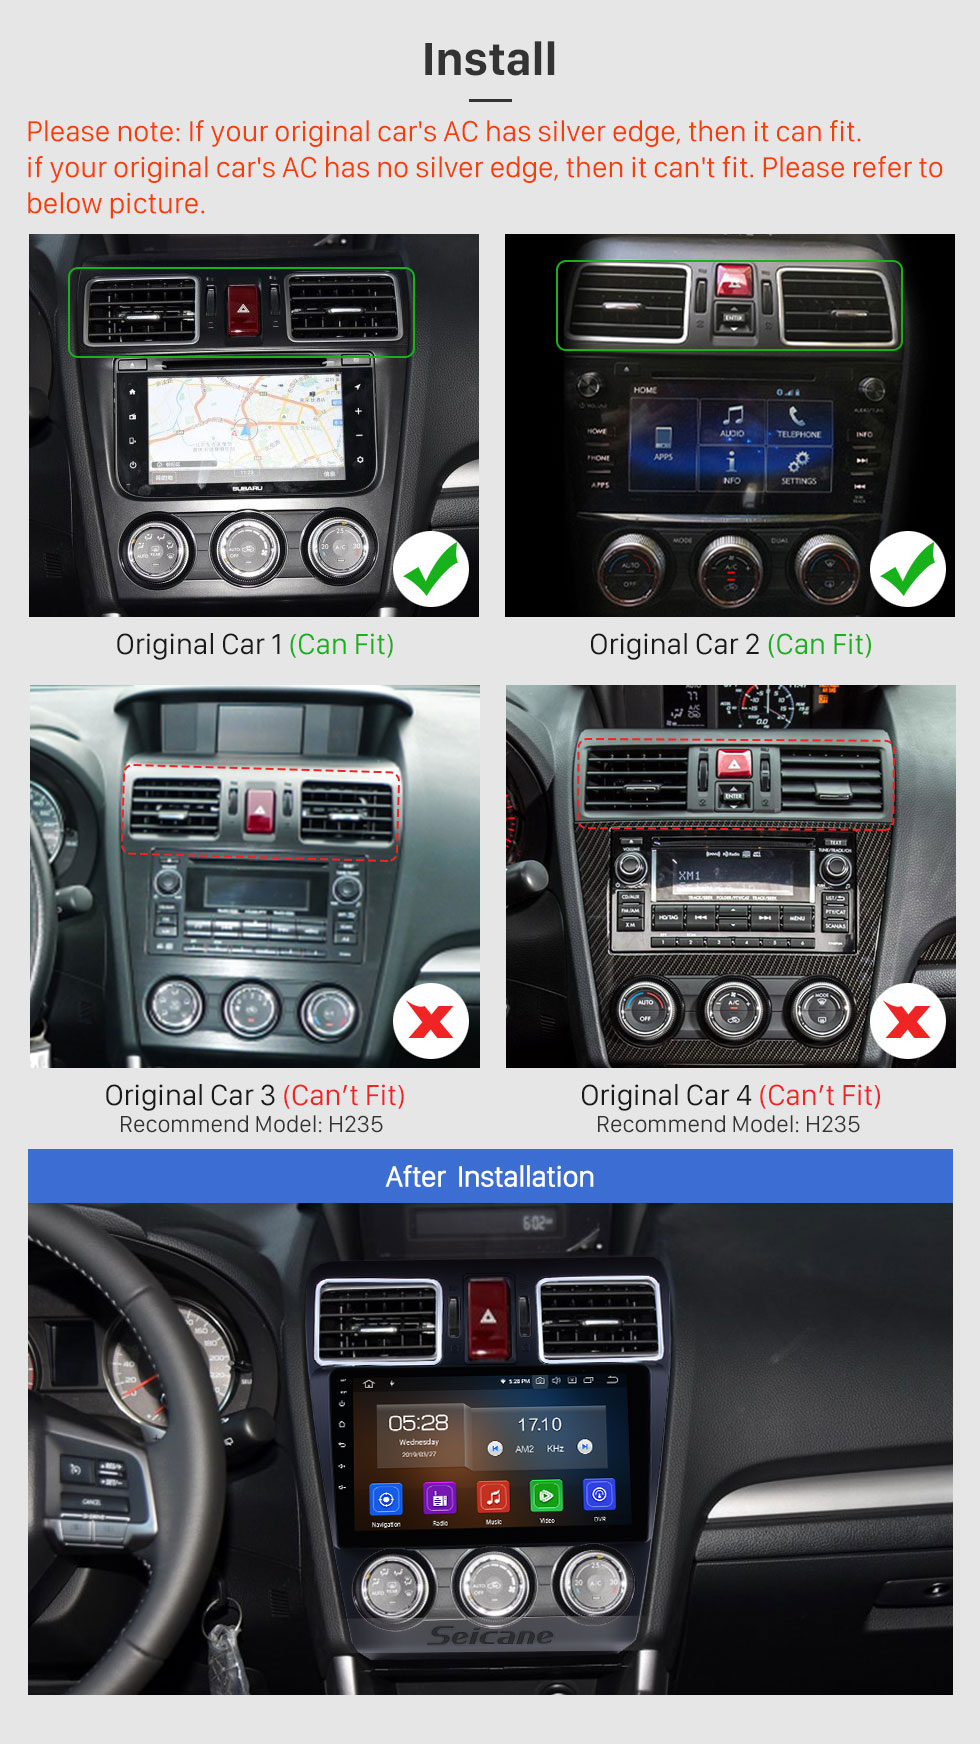 Seicane Android 10.0 9 Inch HD Touchscreen In Dash Radio Head Unit For 2014 2015 2016 Subaru Forester GPS Navigation Bluetooth Music USB Audio System Support Backup Camera Digital TV 1080P Video DVR Steering Wheel Control